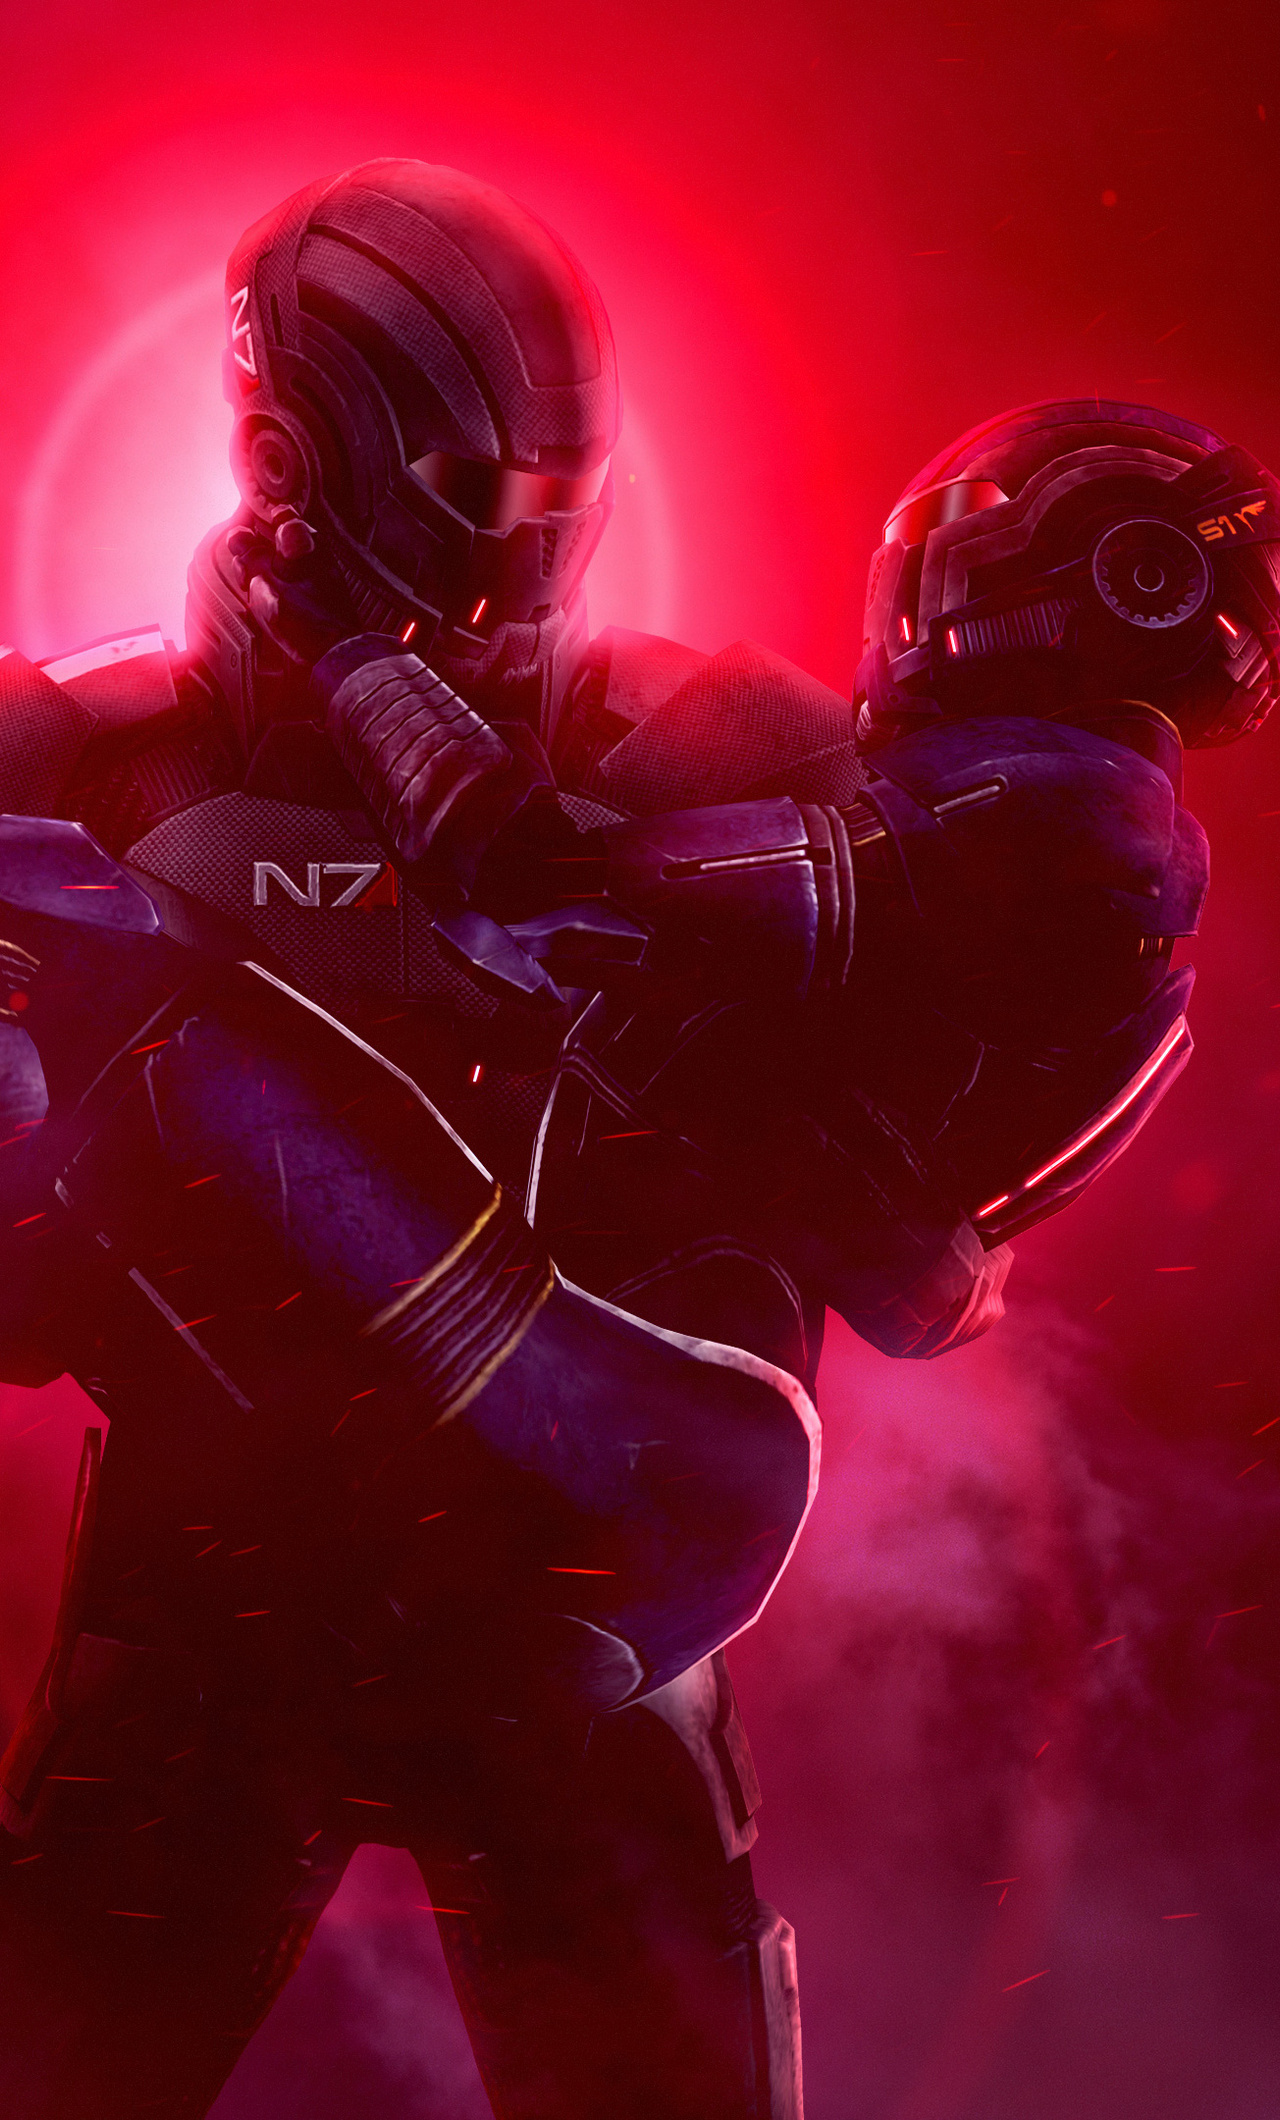 mass-effect-n7-artwork-4k-2y.jpg